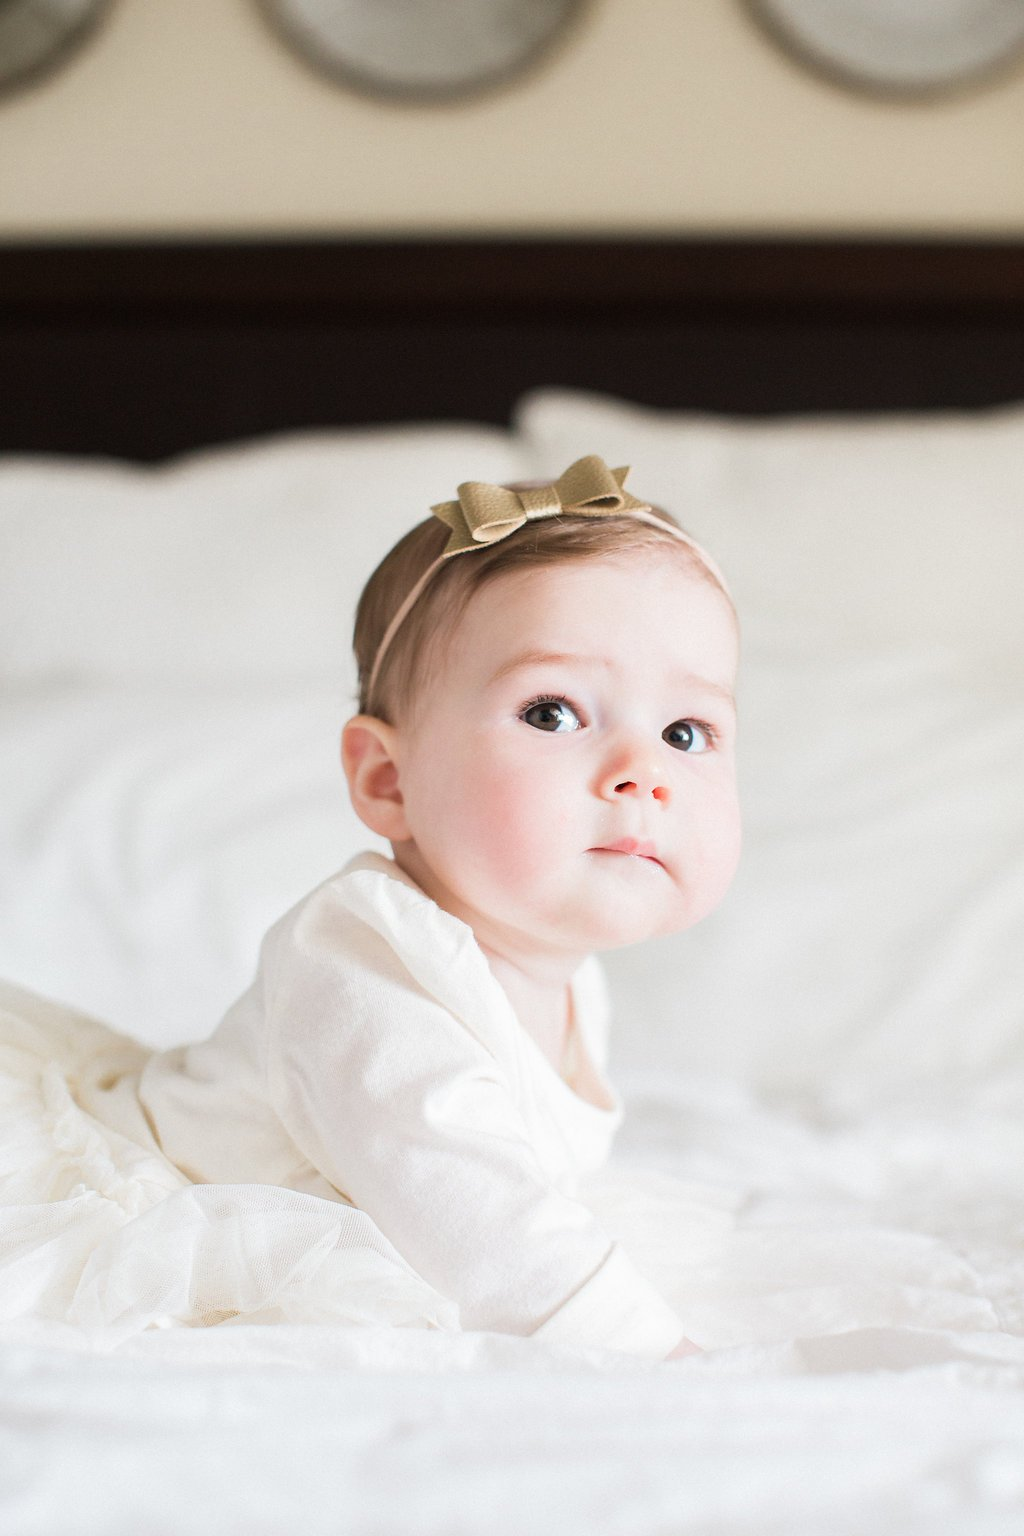 Picture of baby on a bed with white sheets in a white dress with a gold bow